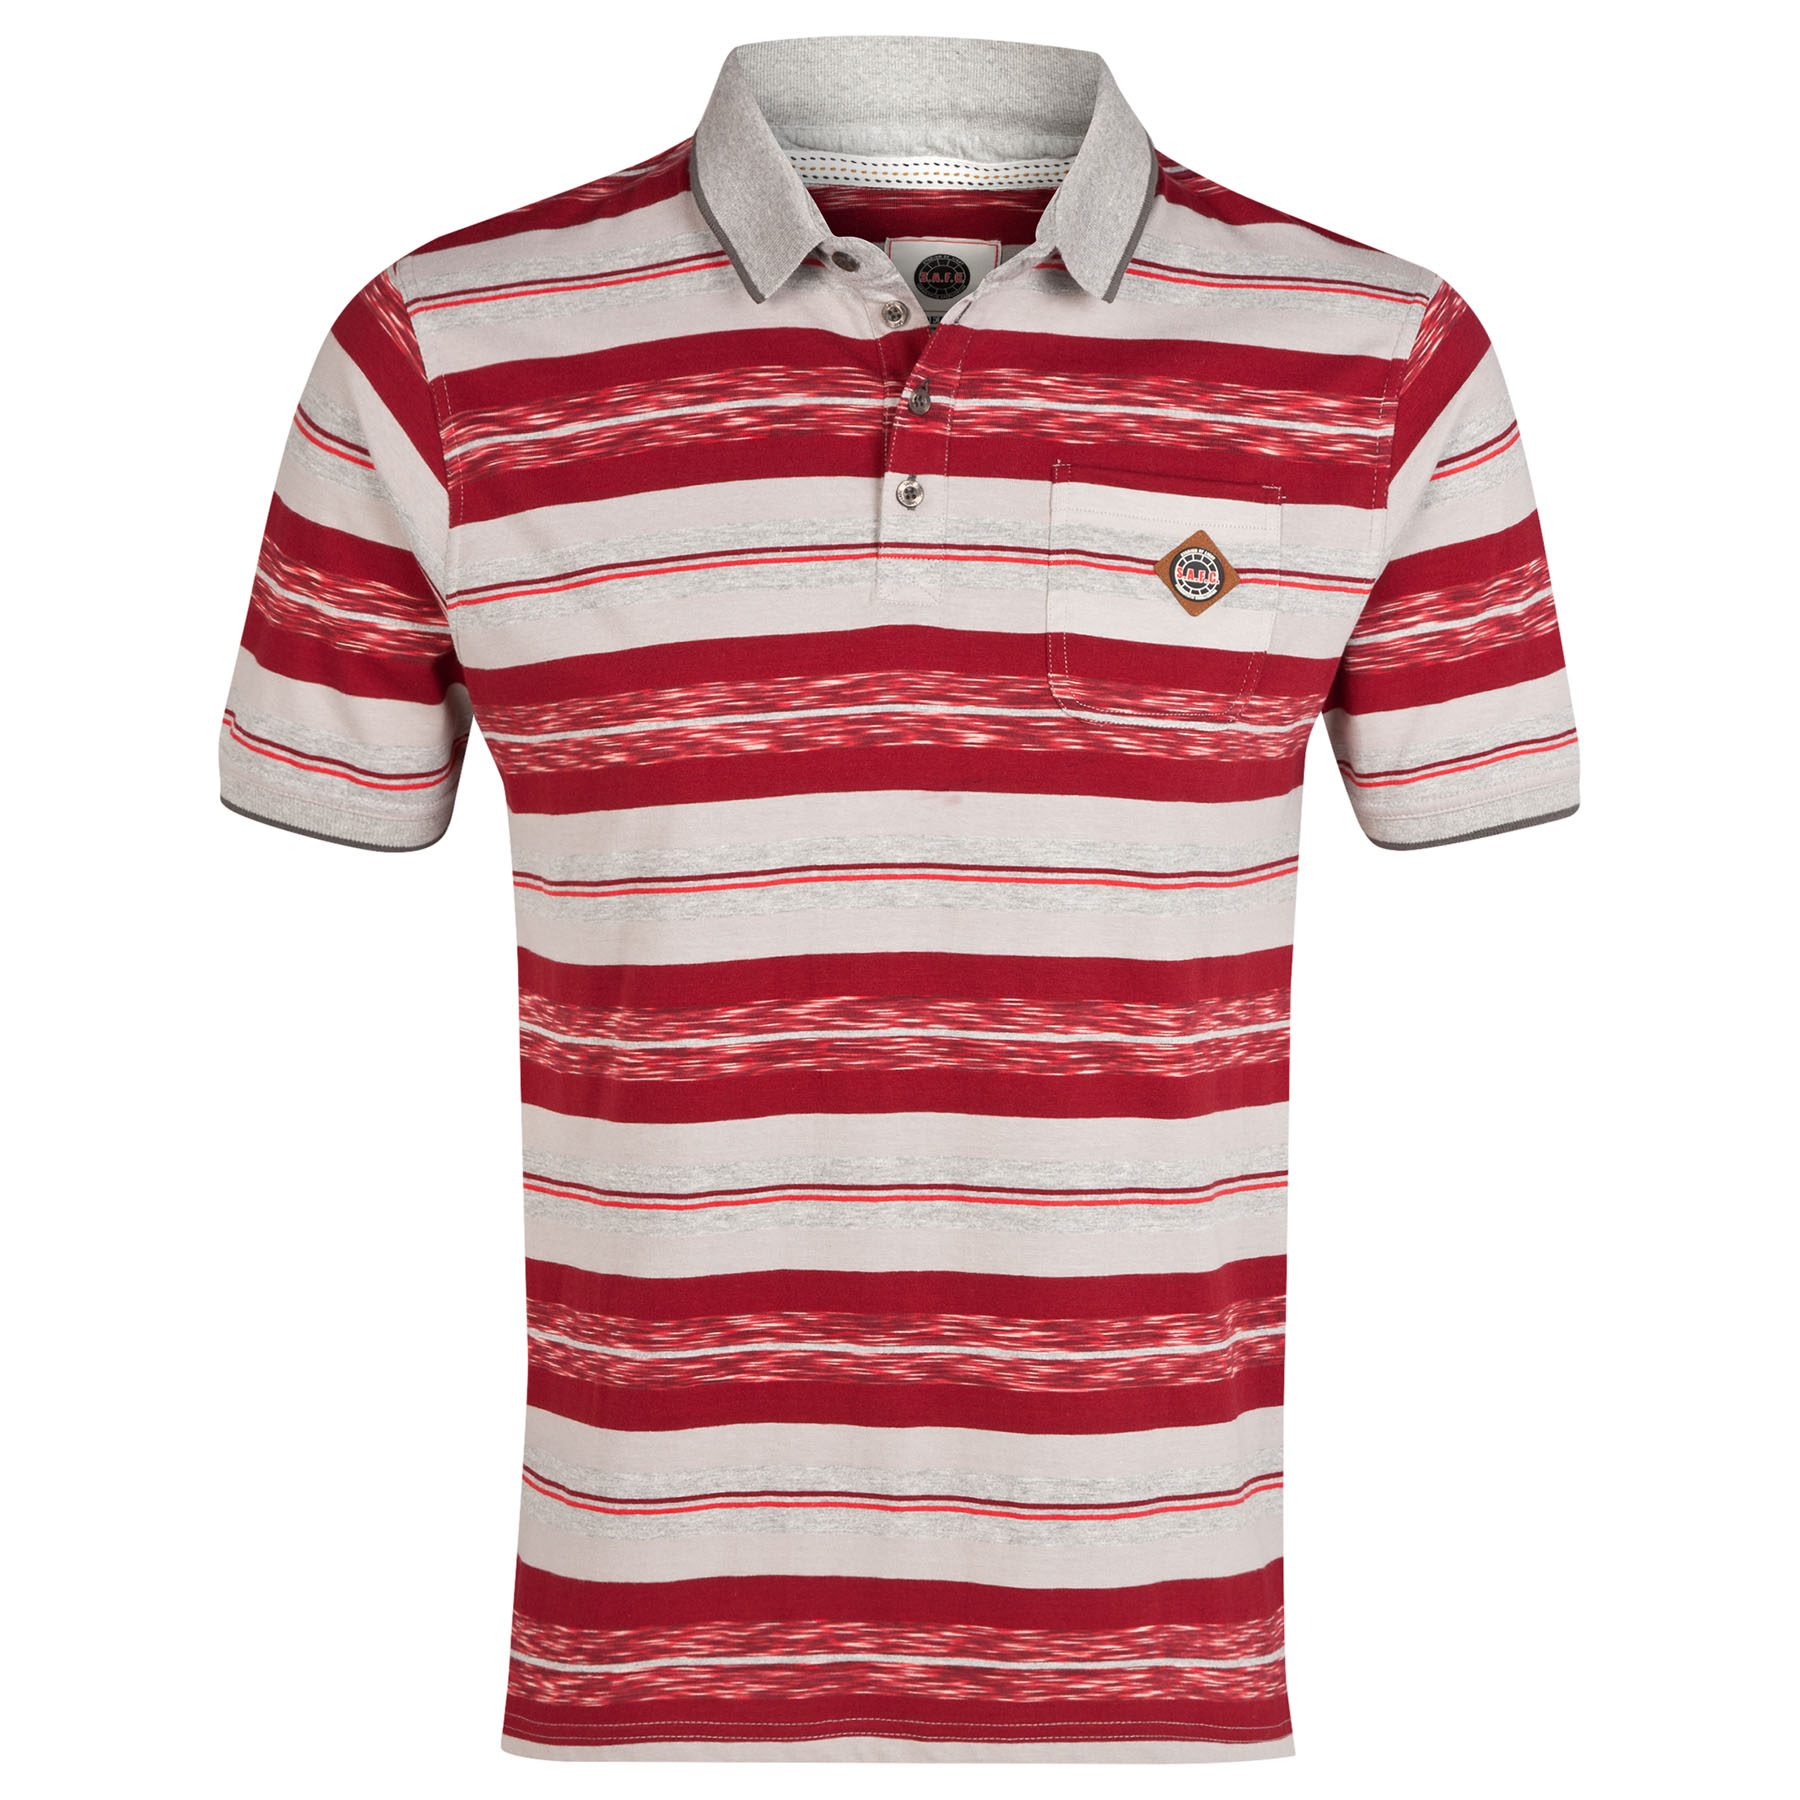 Sunderland Stripe Polo Shirt - Grey/Red - Older Boys